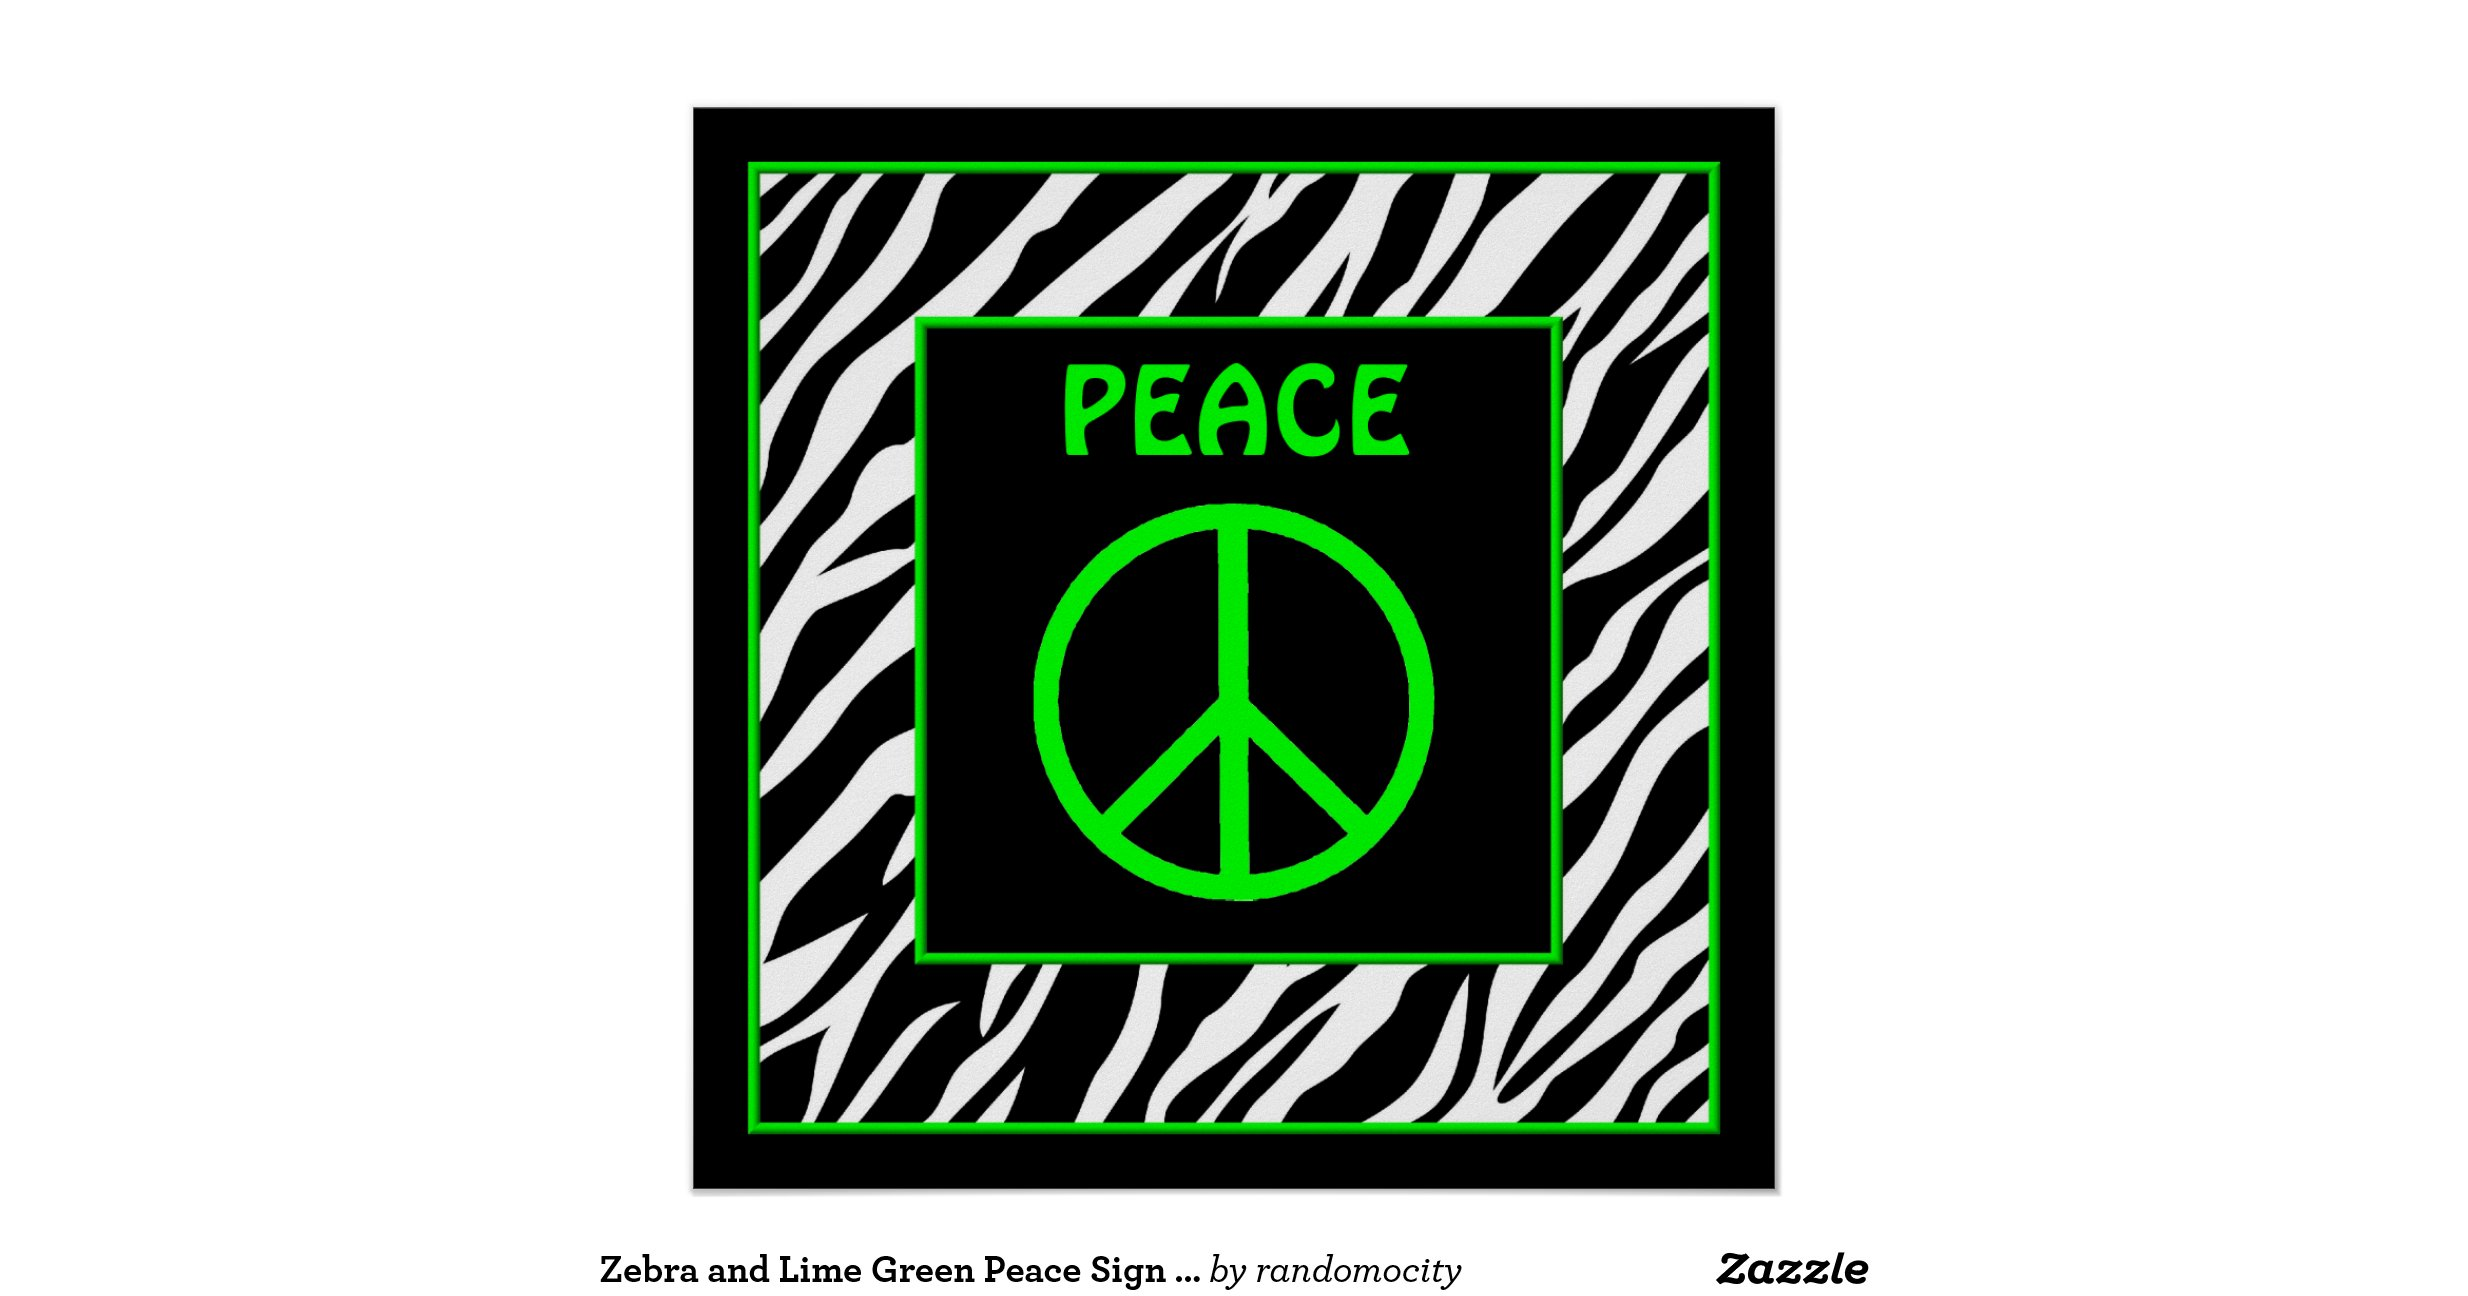 Wall Art Greenpeace : Zebra and lime green peace sign wall decor poster